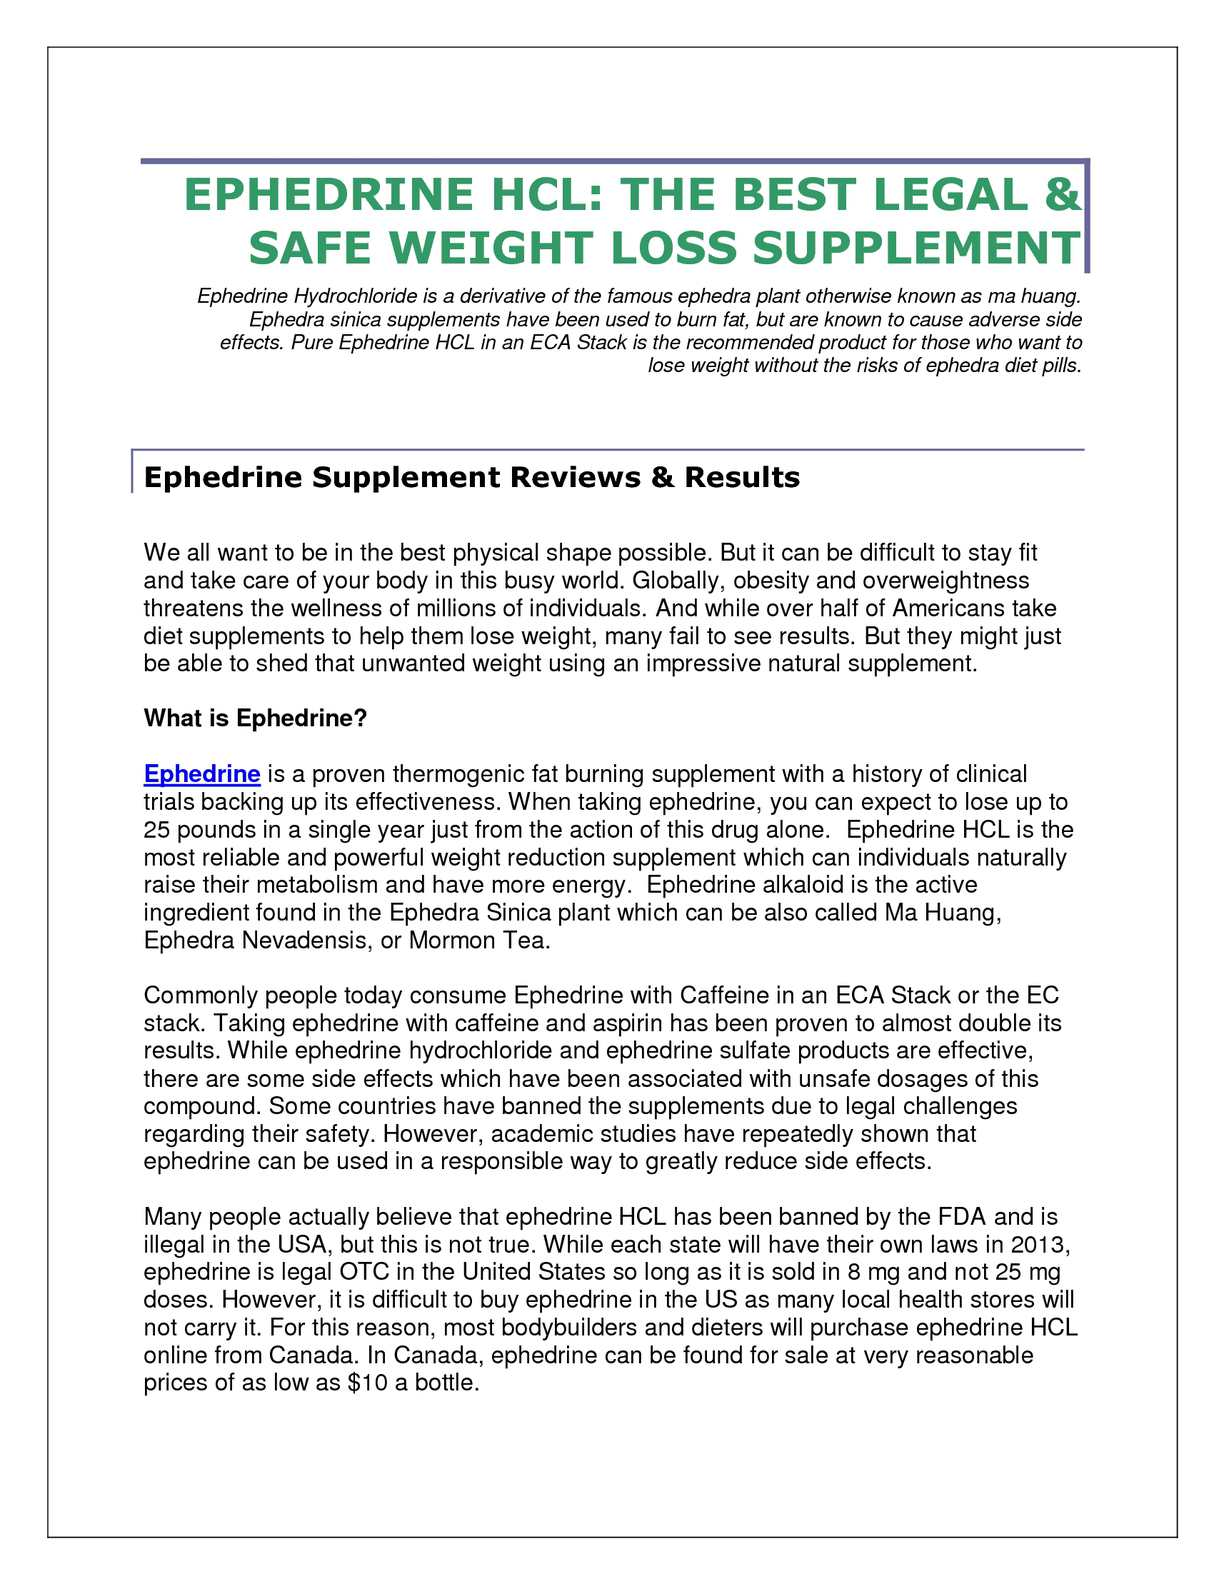 Calaméo - EPHEDRINE HCL: THE BEST LEGAL & SAFE WEIGHT LOSS SUPPLEMENT